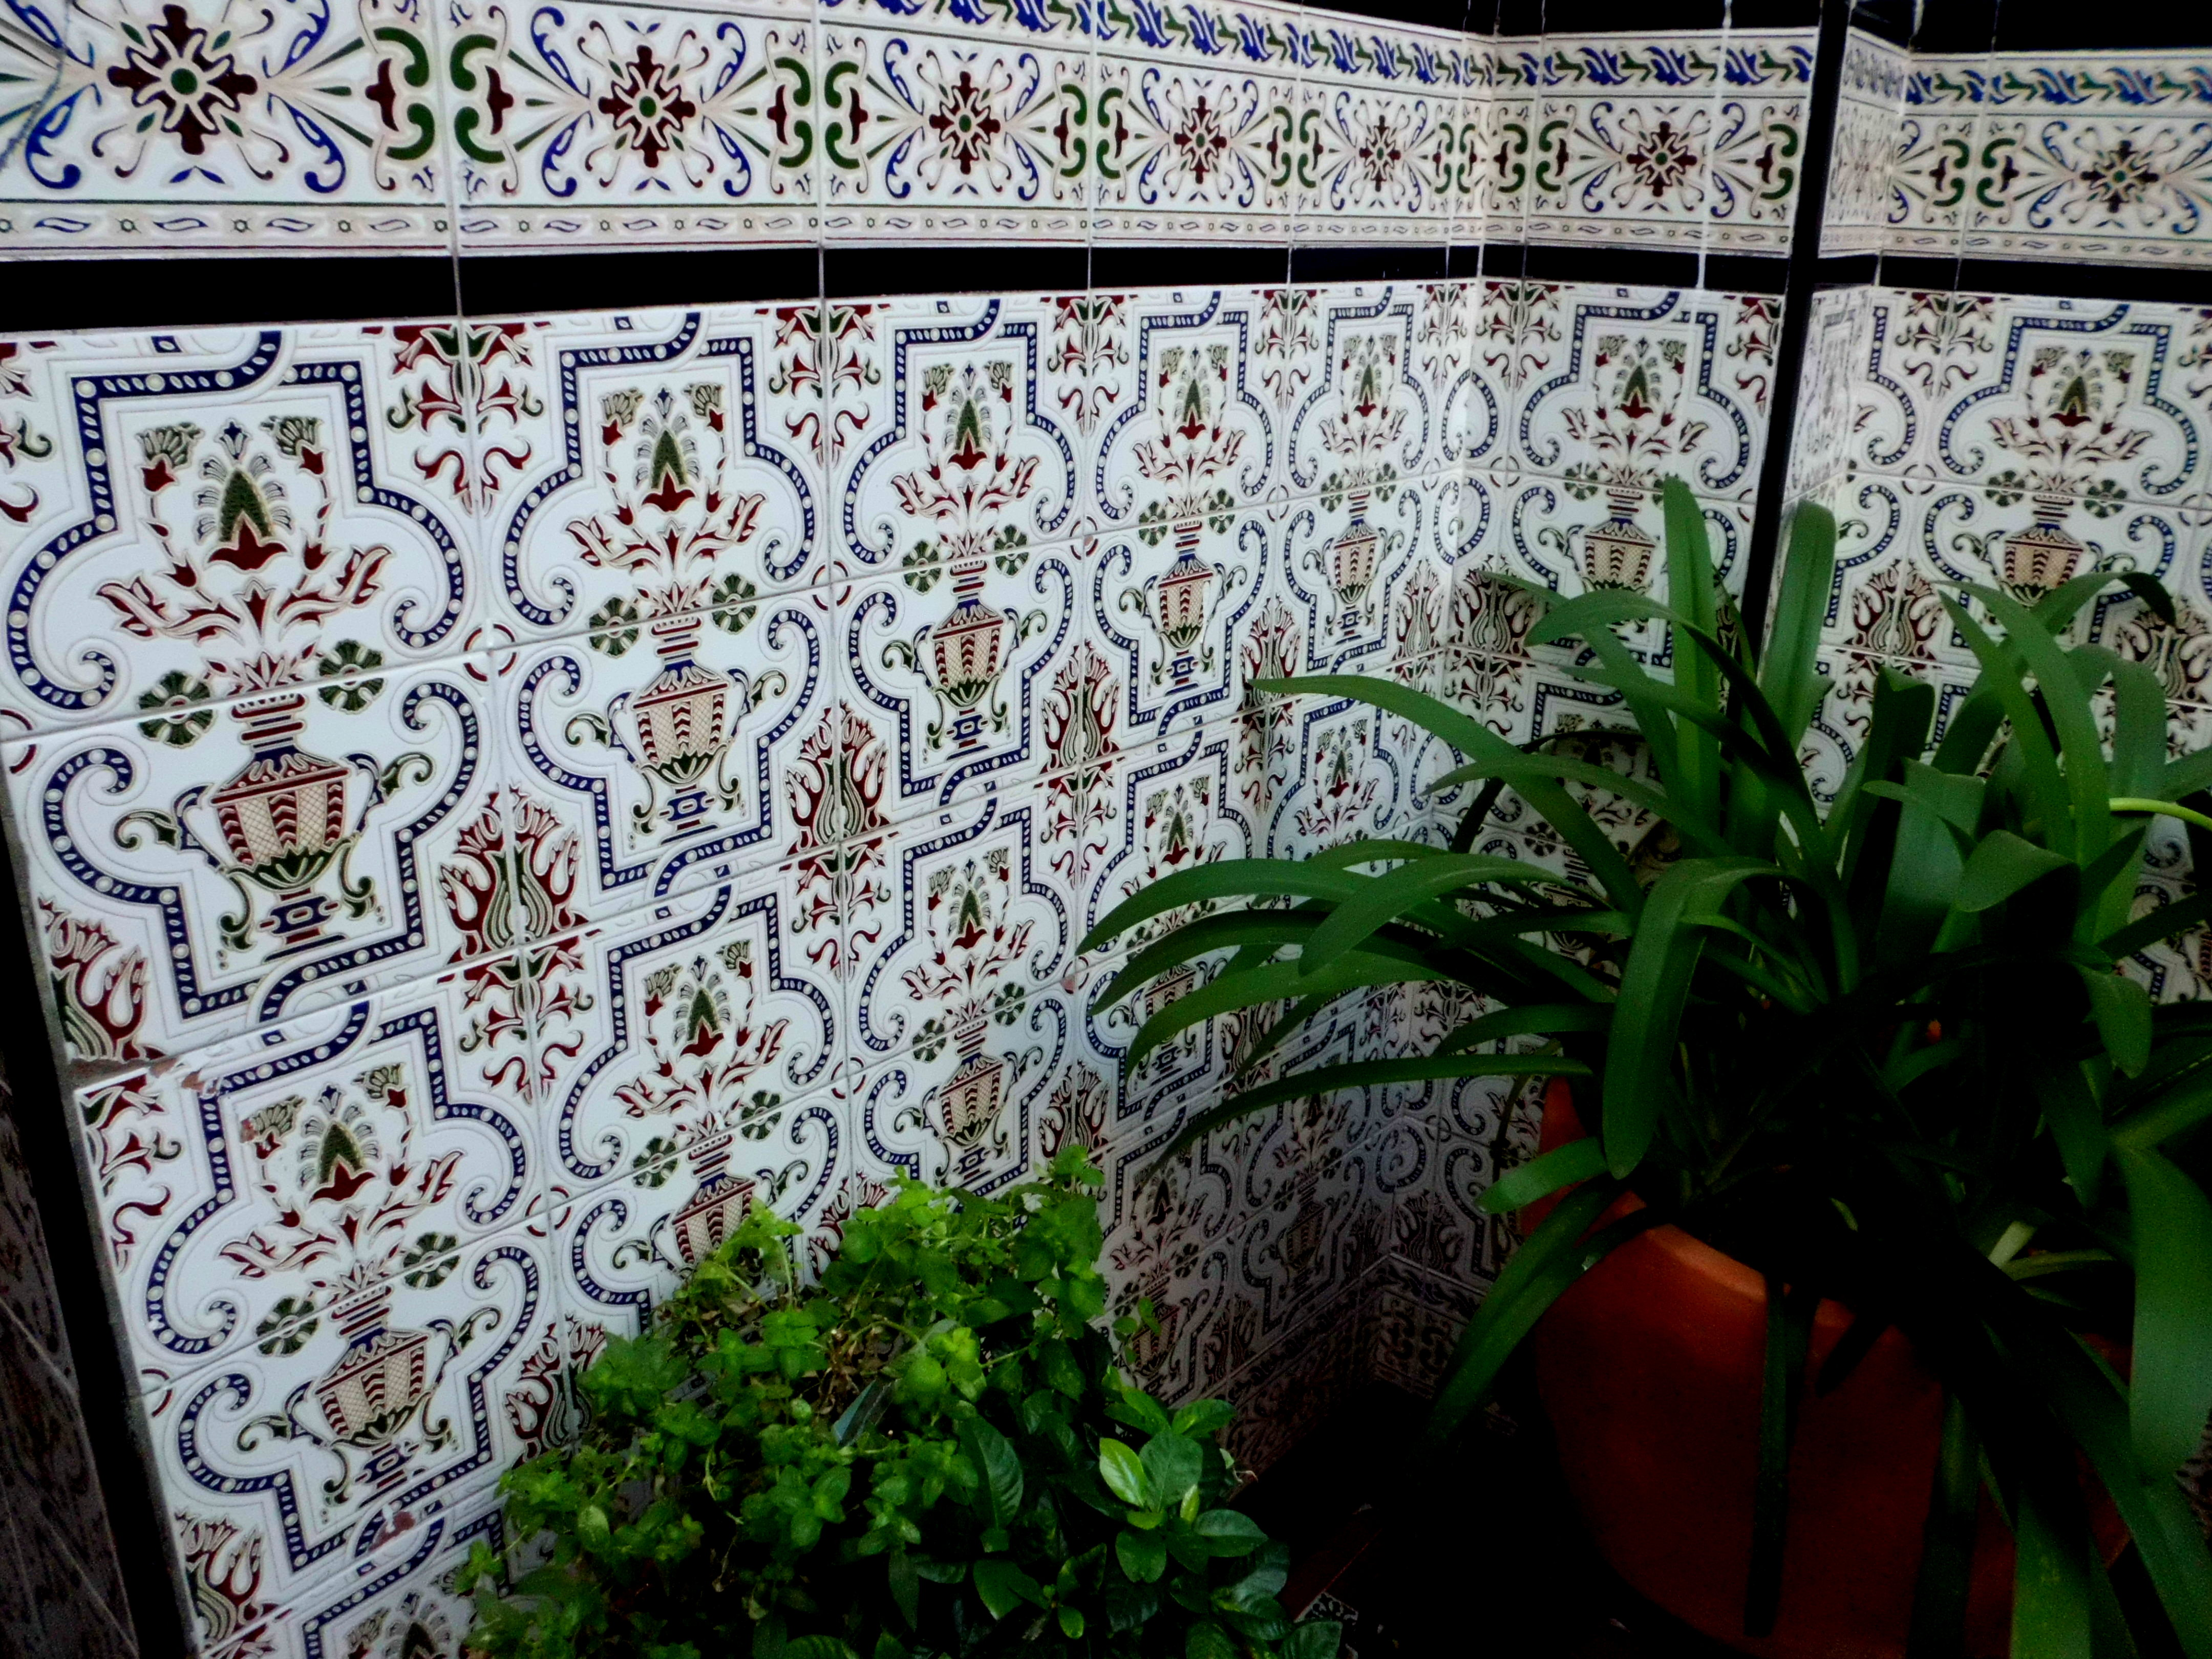 Courtyard tile work in Cordoba